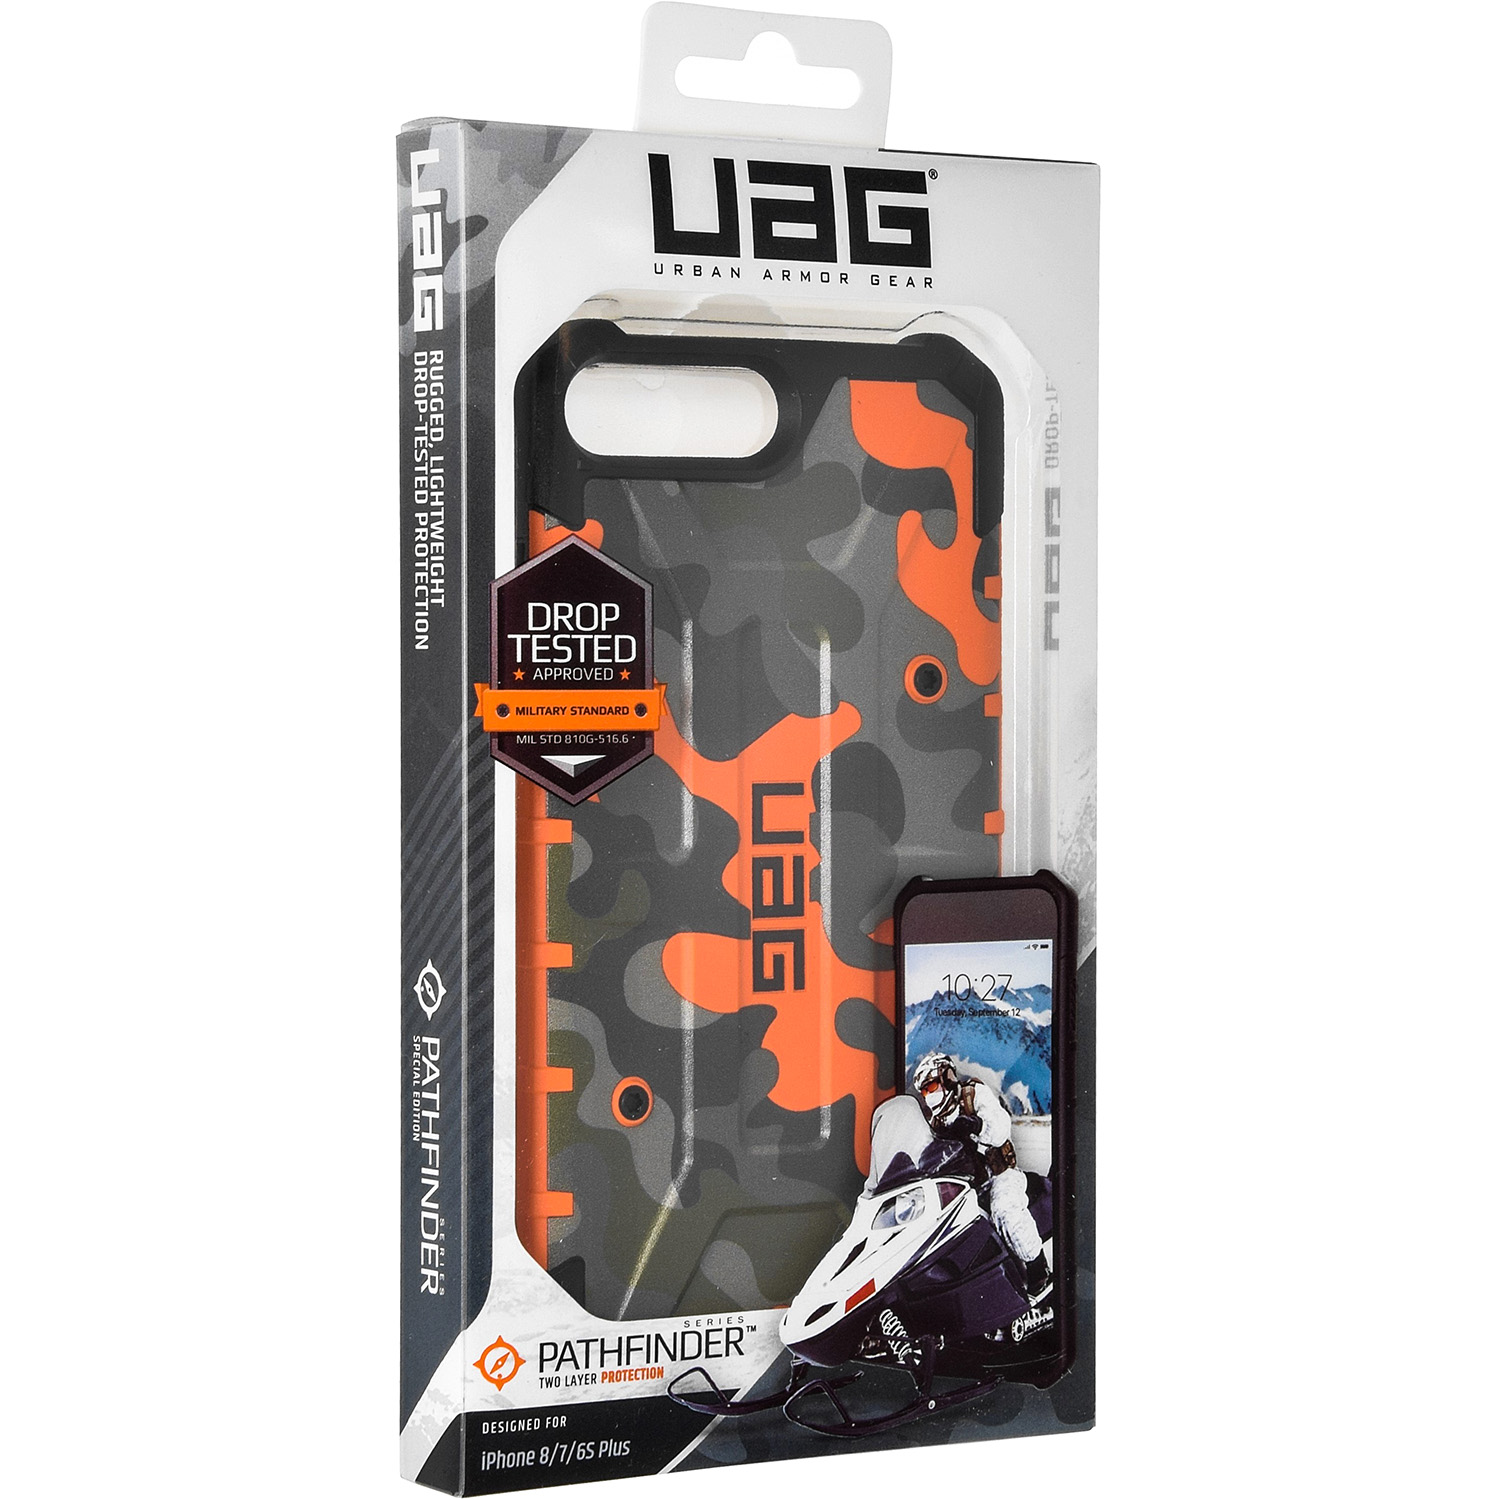 Etui Urban Armor Gear Pathfinder dla iPhone 8 Plus, 7+, 6s+. caseA